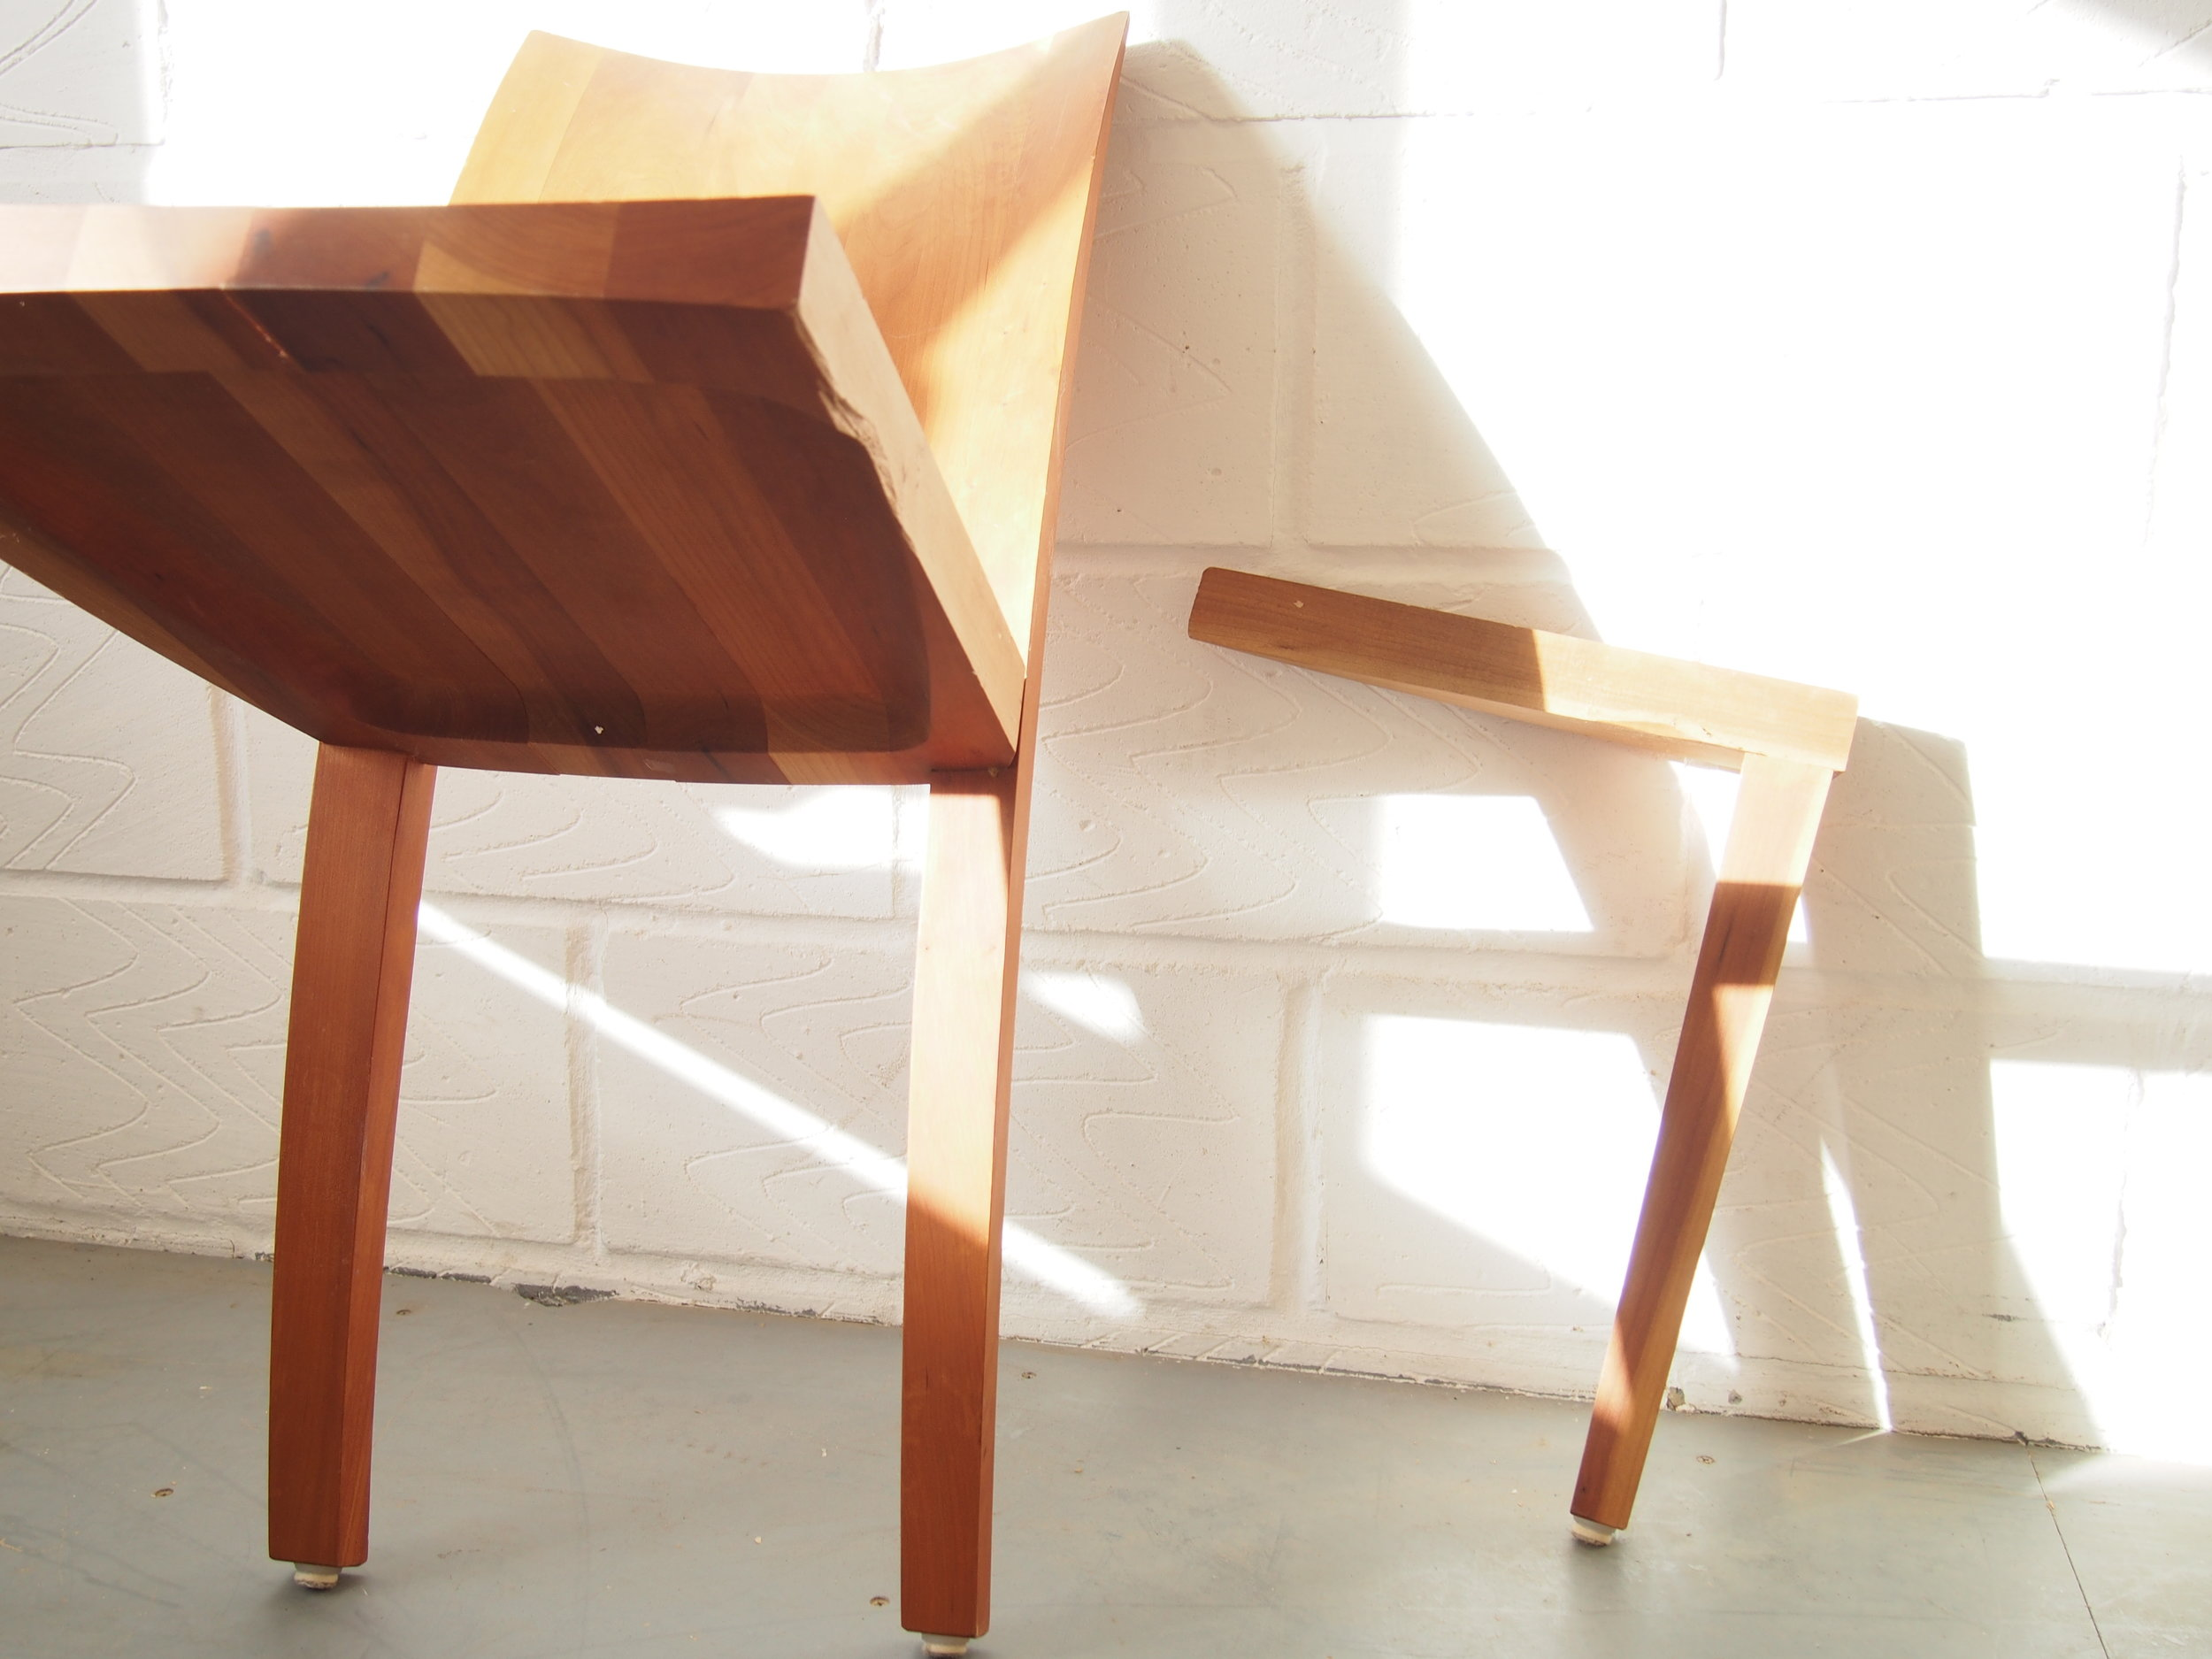 All Five chairs were presented with loose joints and a few chairs had broken parts.